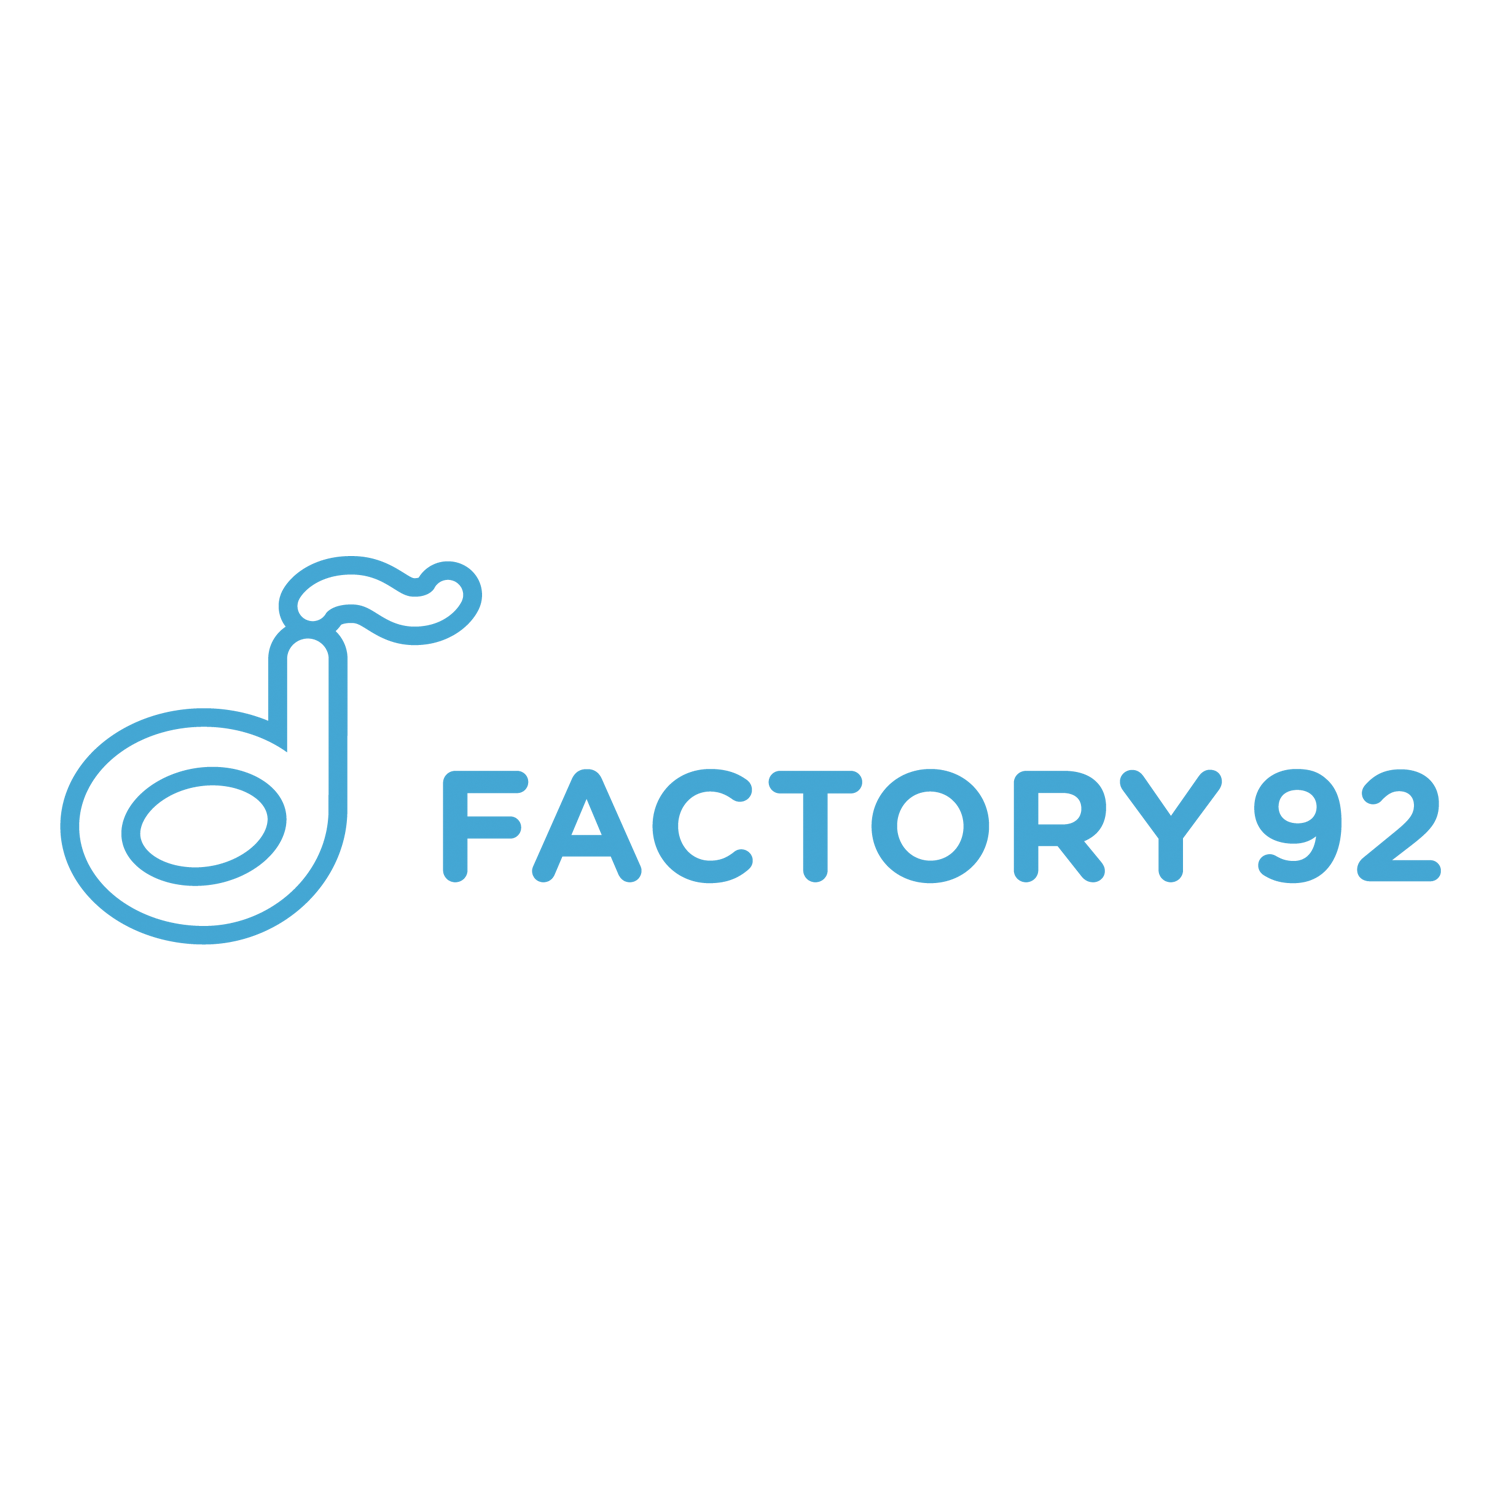 Factory-92.png